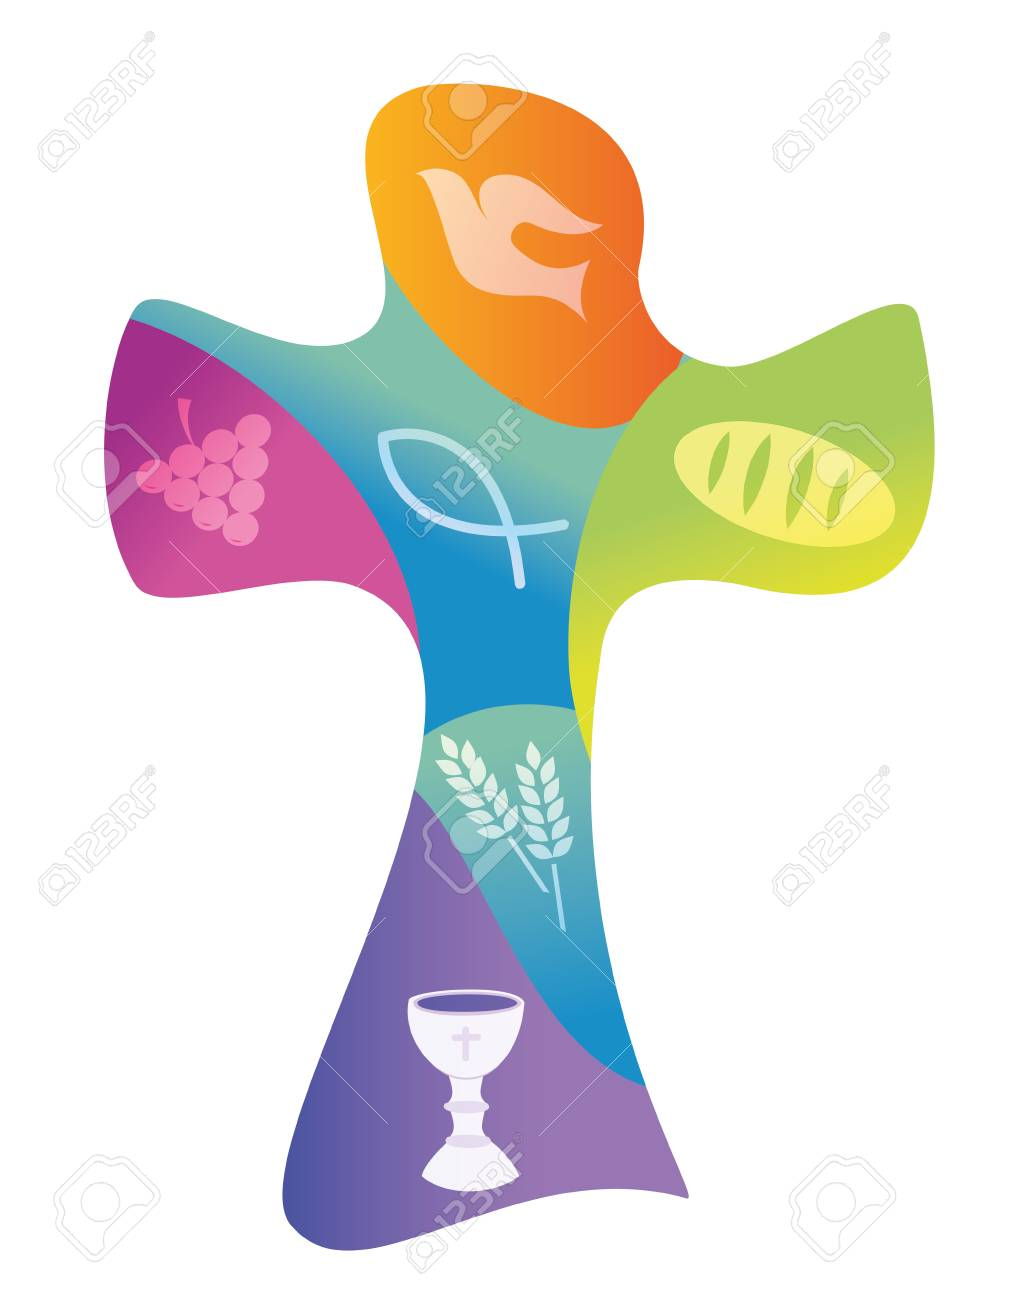 Colorful christian cross with various symbols - 110617570